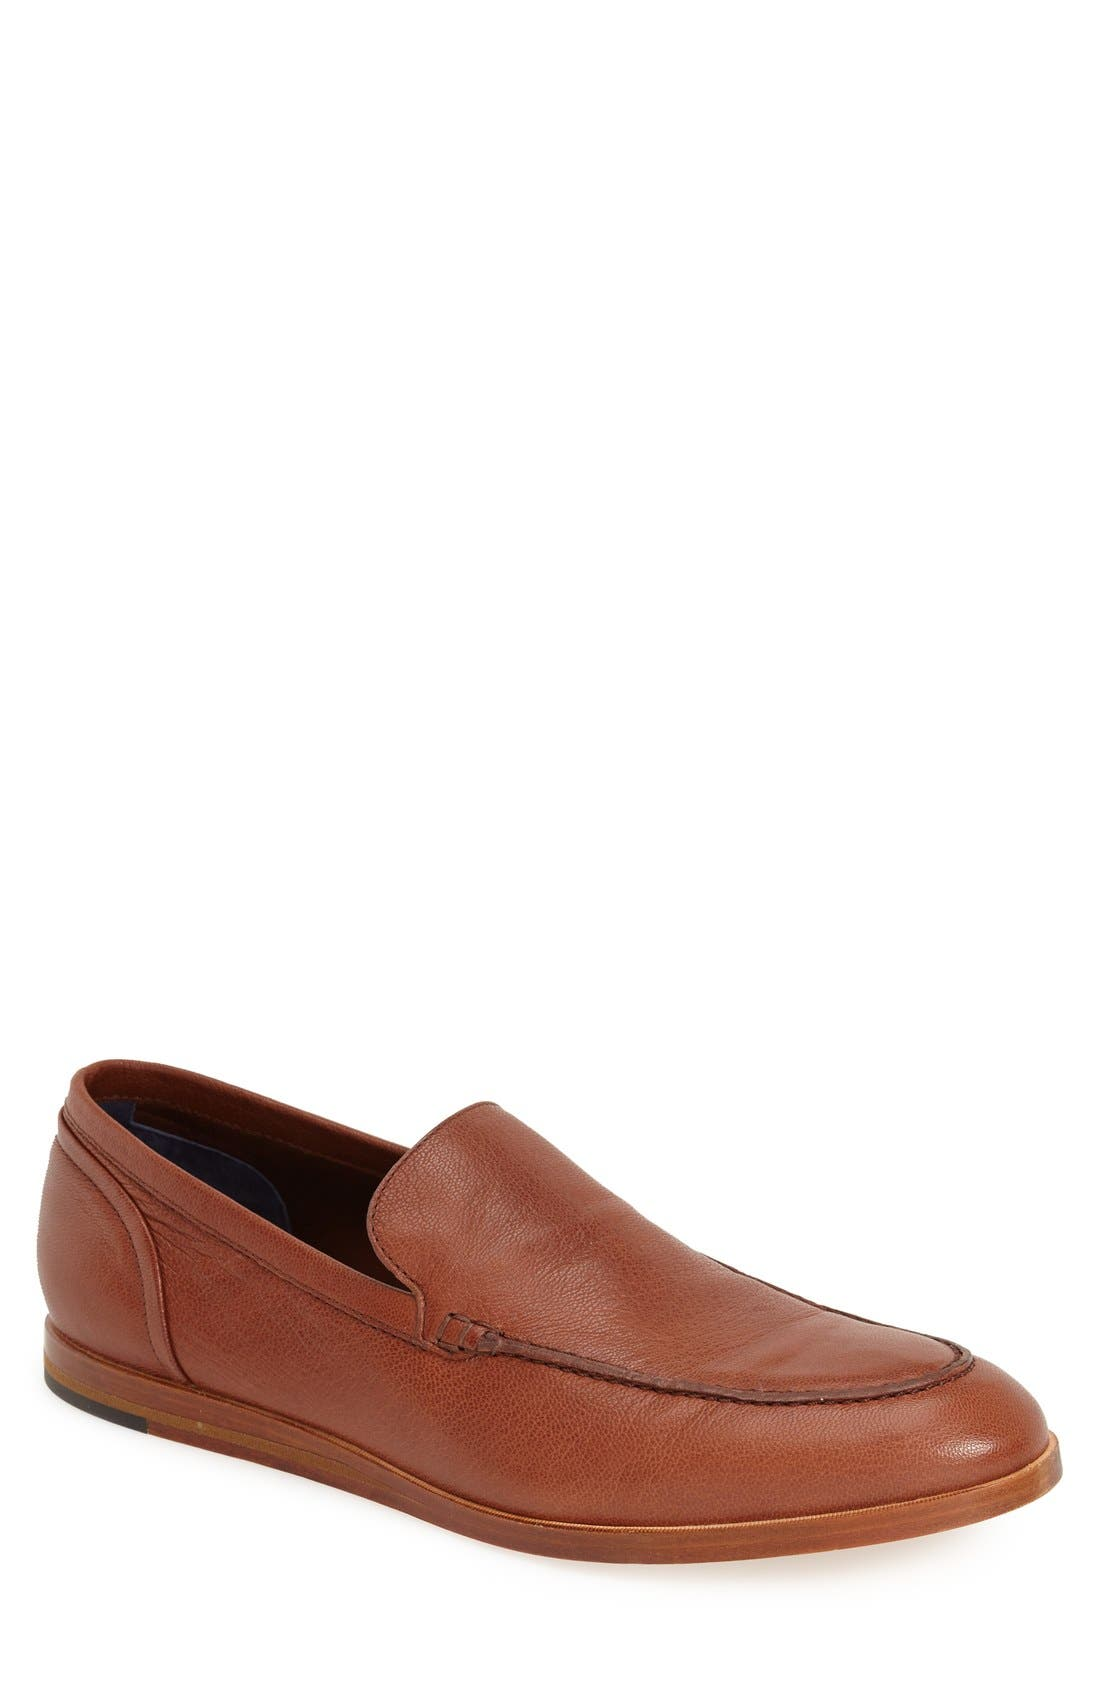 'Bedford' Loafer,                             Main thumbnail 1, color,                             Sequoia Brown